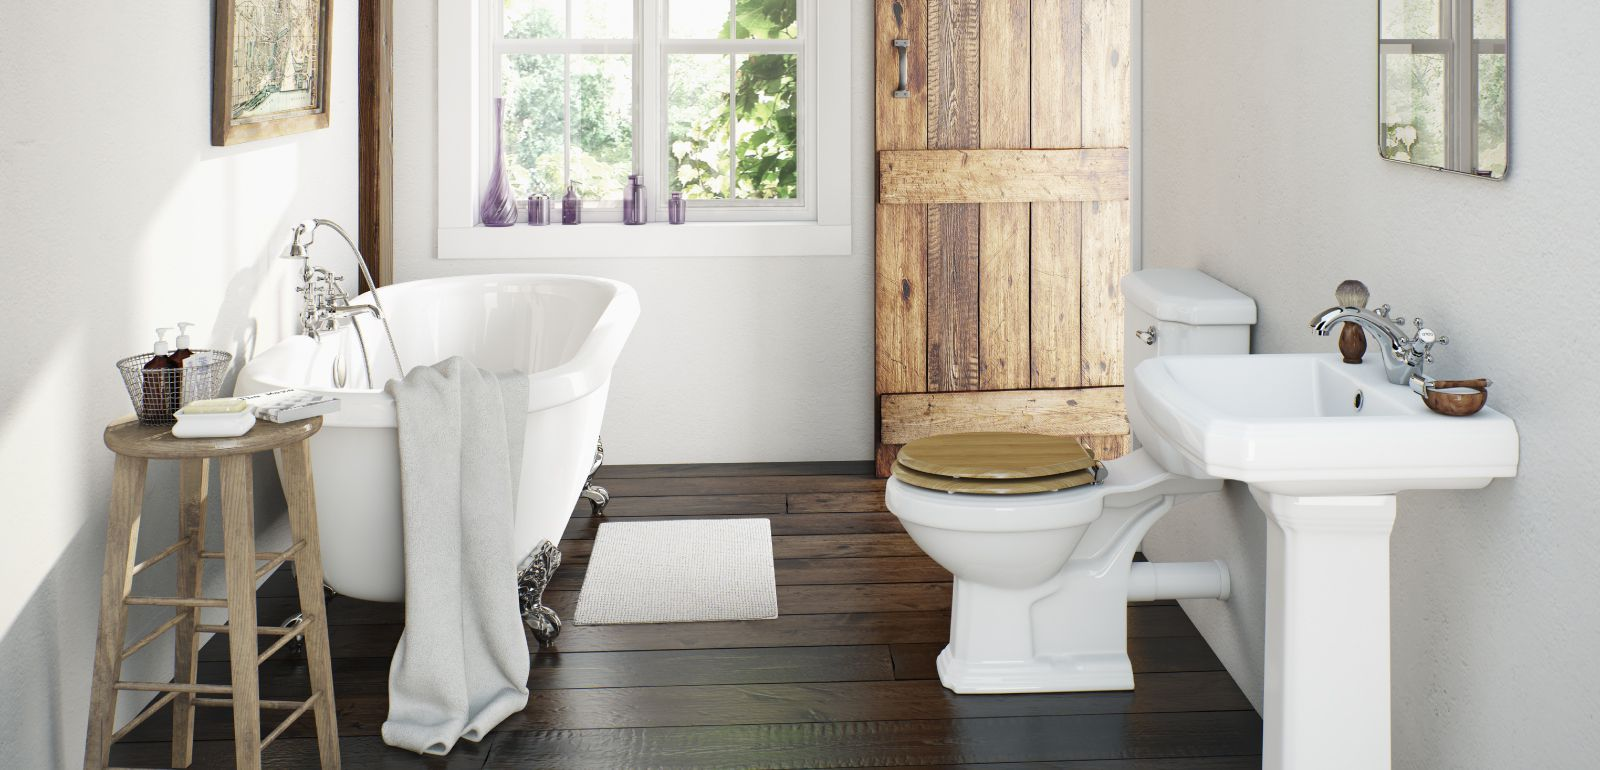 Simple White Small Bathroom Country Style With Bathtub and Sink ...